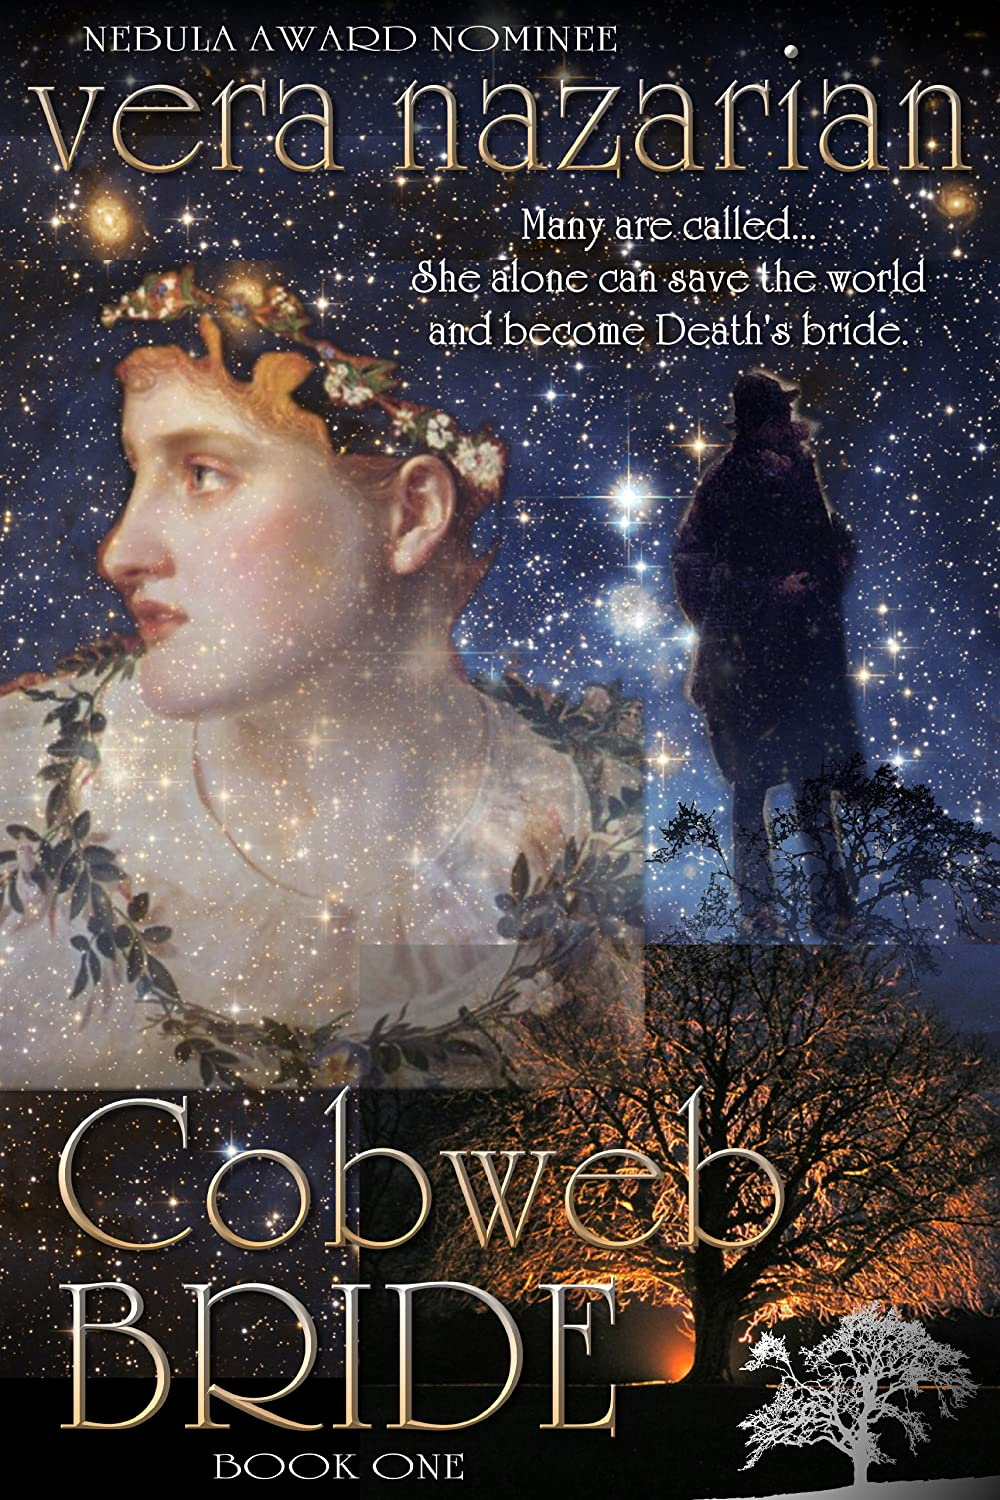 Cobweb Bride (Cobweb Bride Trilogy Book 1) by Vera Nazarian